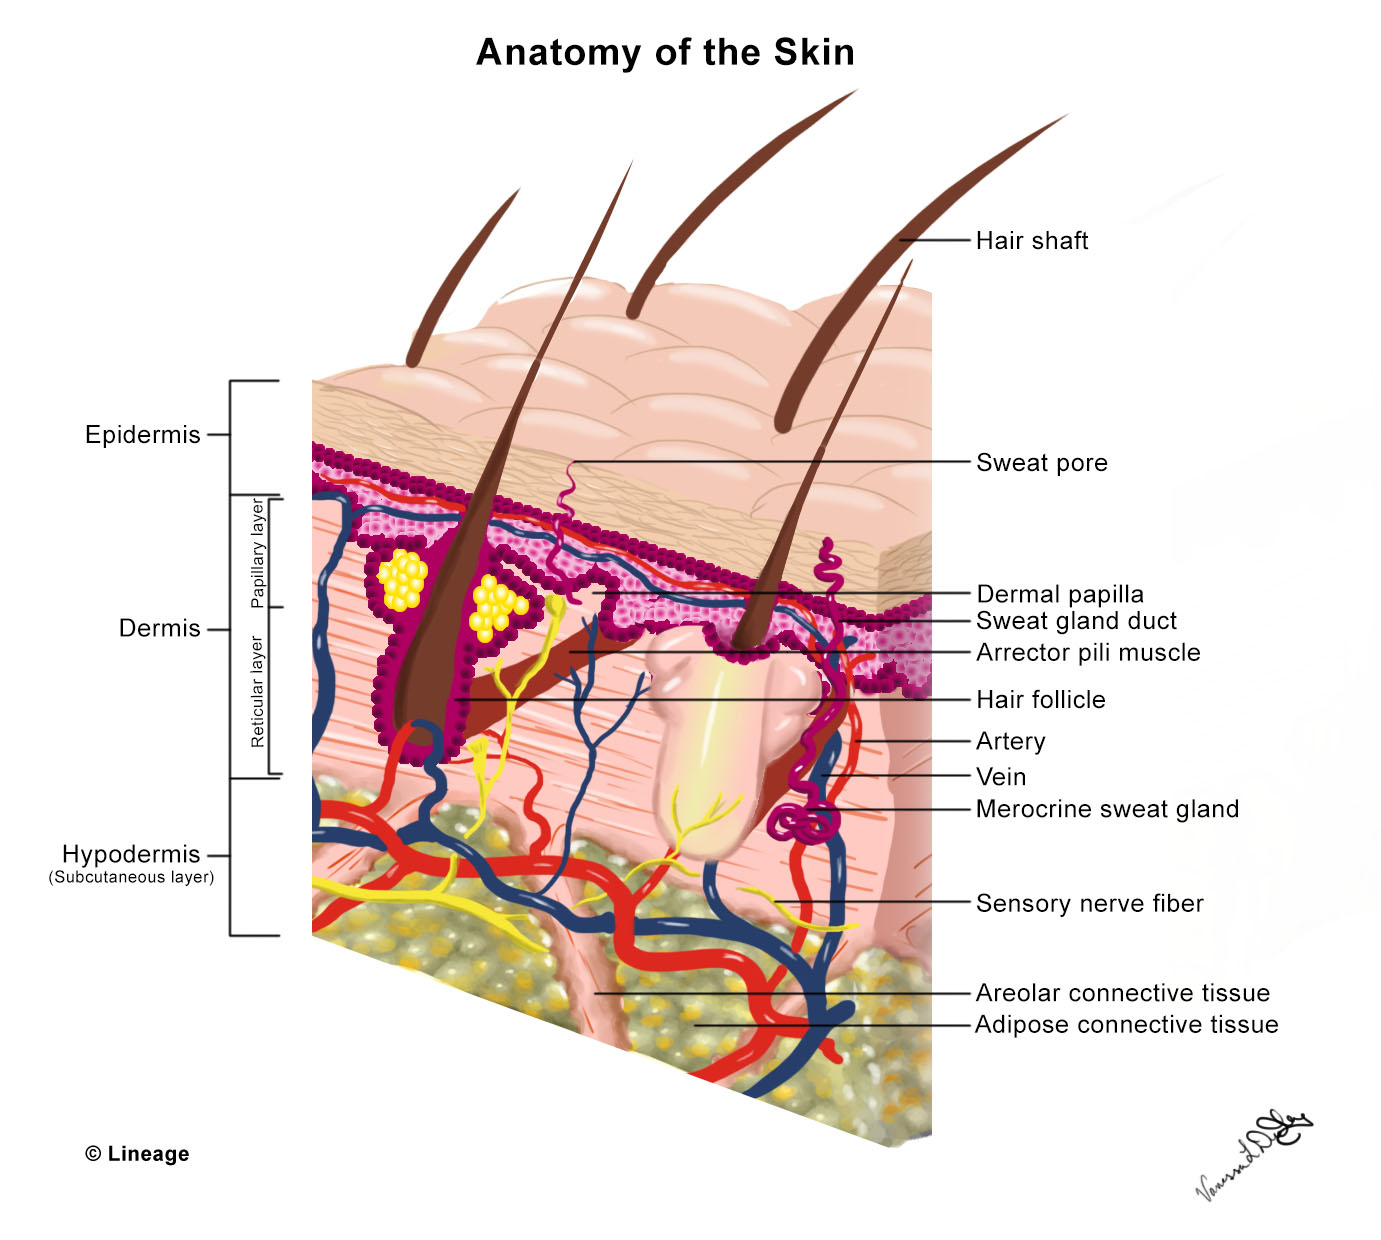 Skin Anatomy and Wound Healing - Dermatology - Medbullets Step 2/3